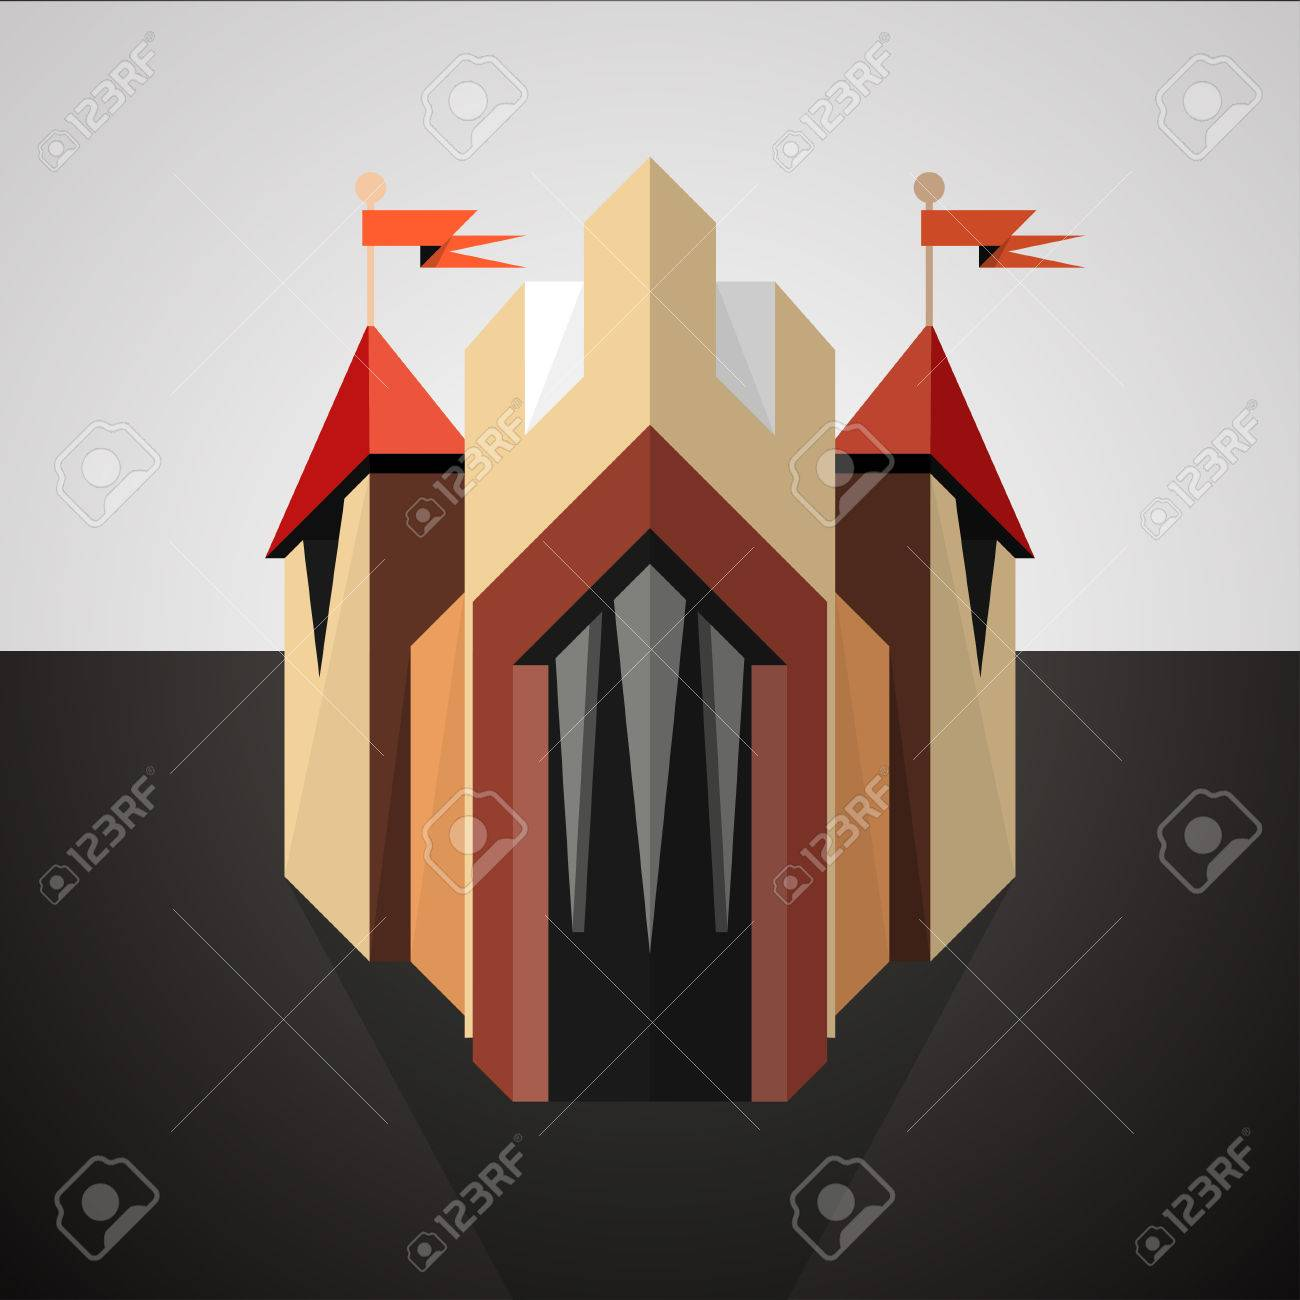 Illustration of a cartoon castle icon with red flags drawn in perspective on dark landscape Stock Vector - 24442043